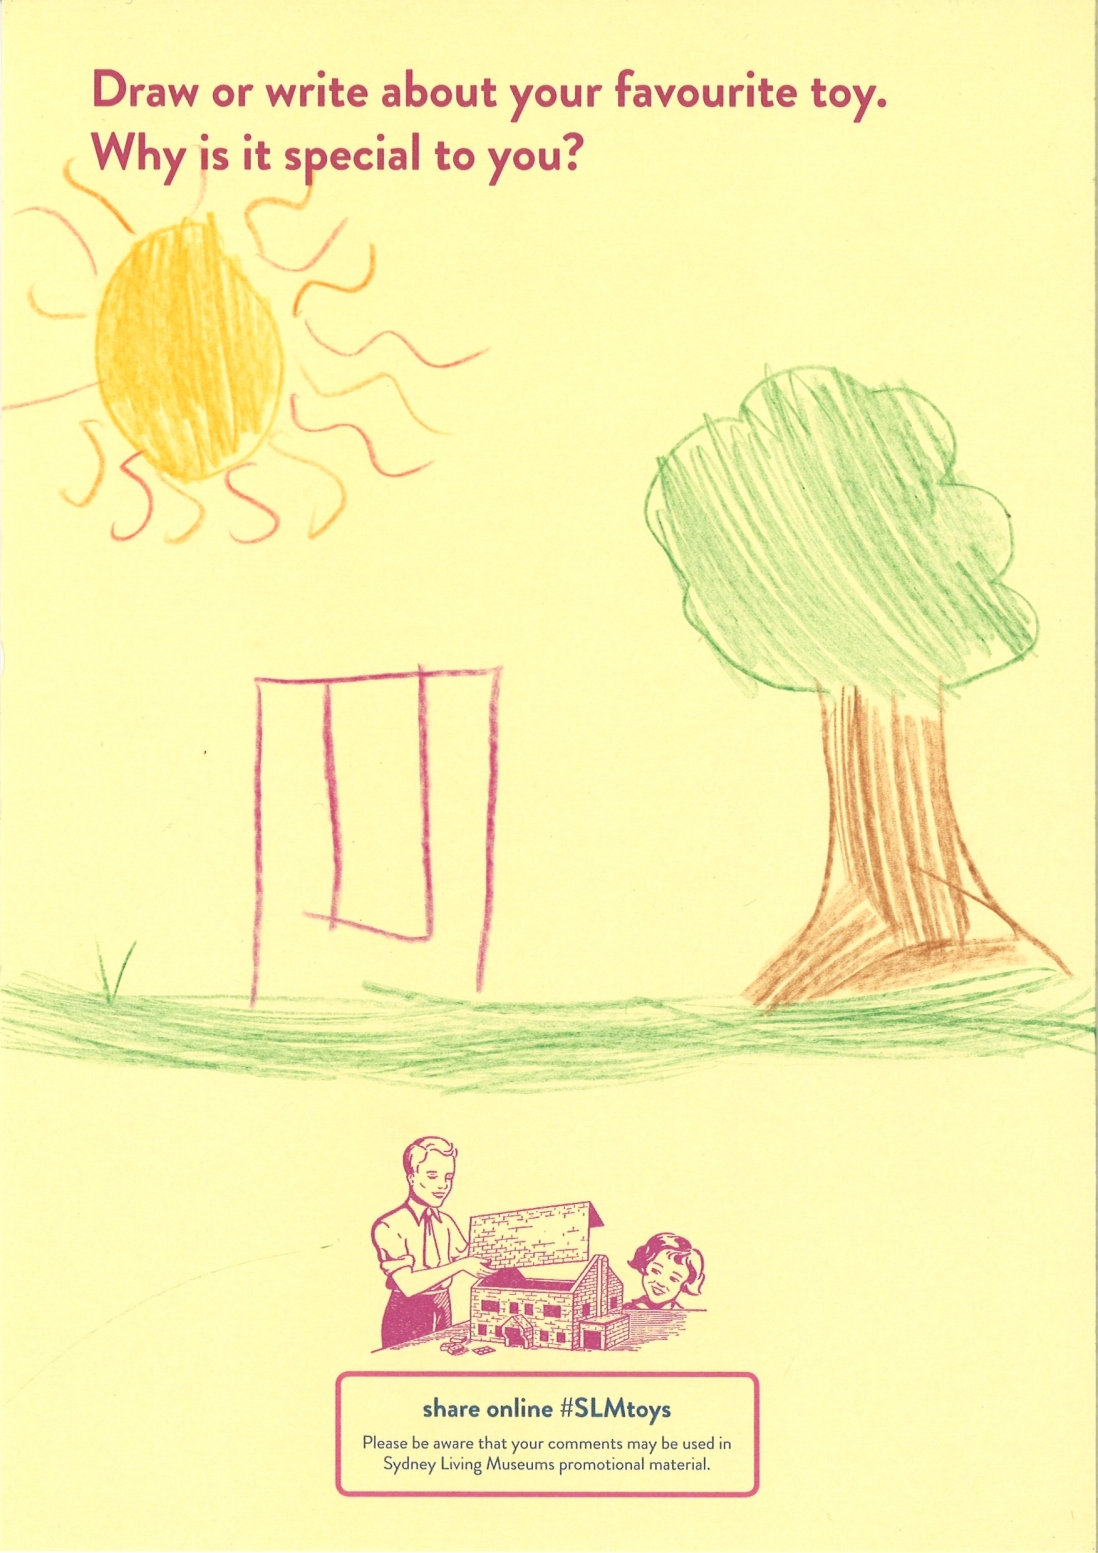 A child's drawing of a swing set